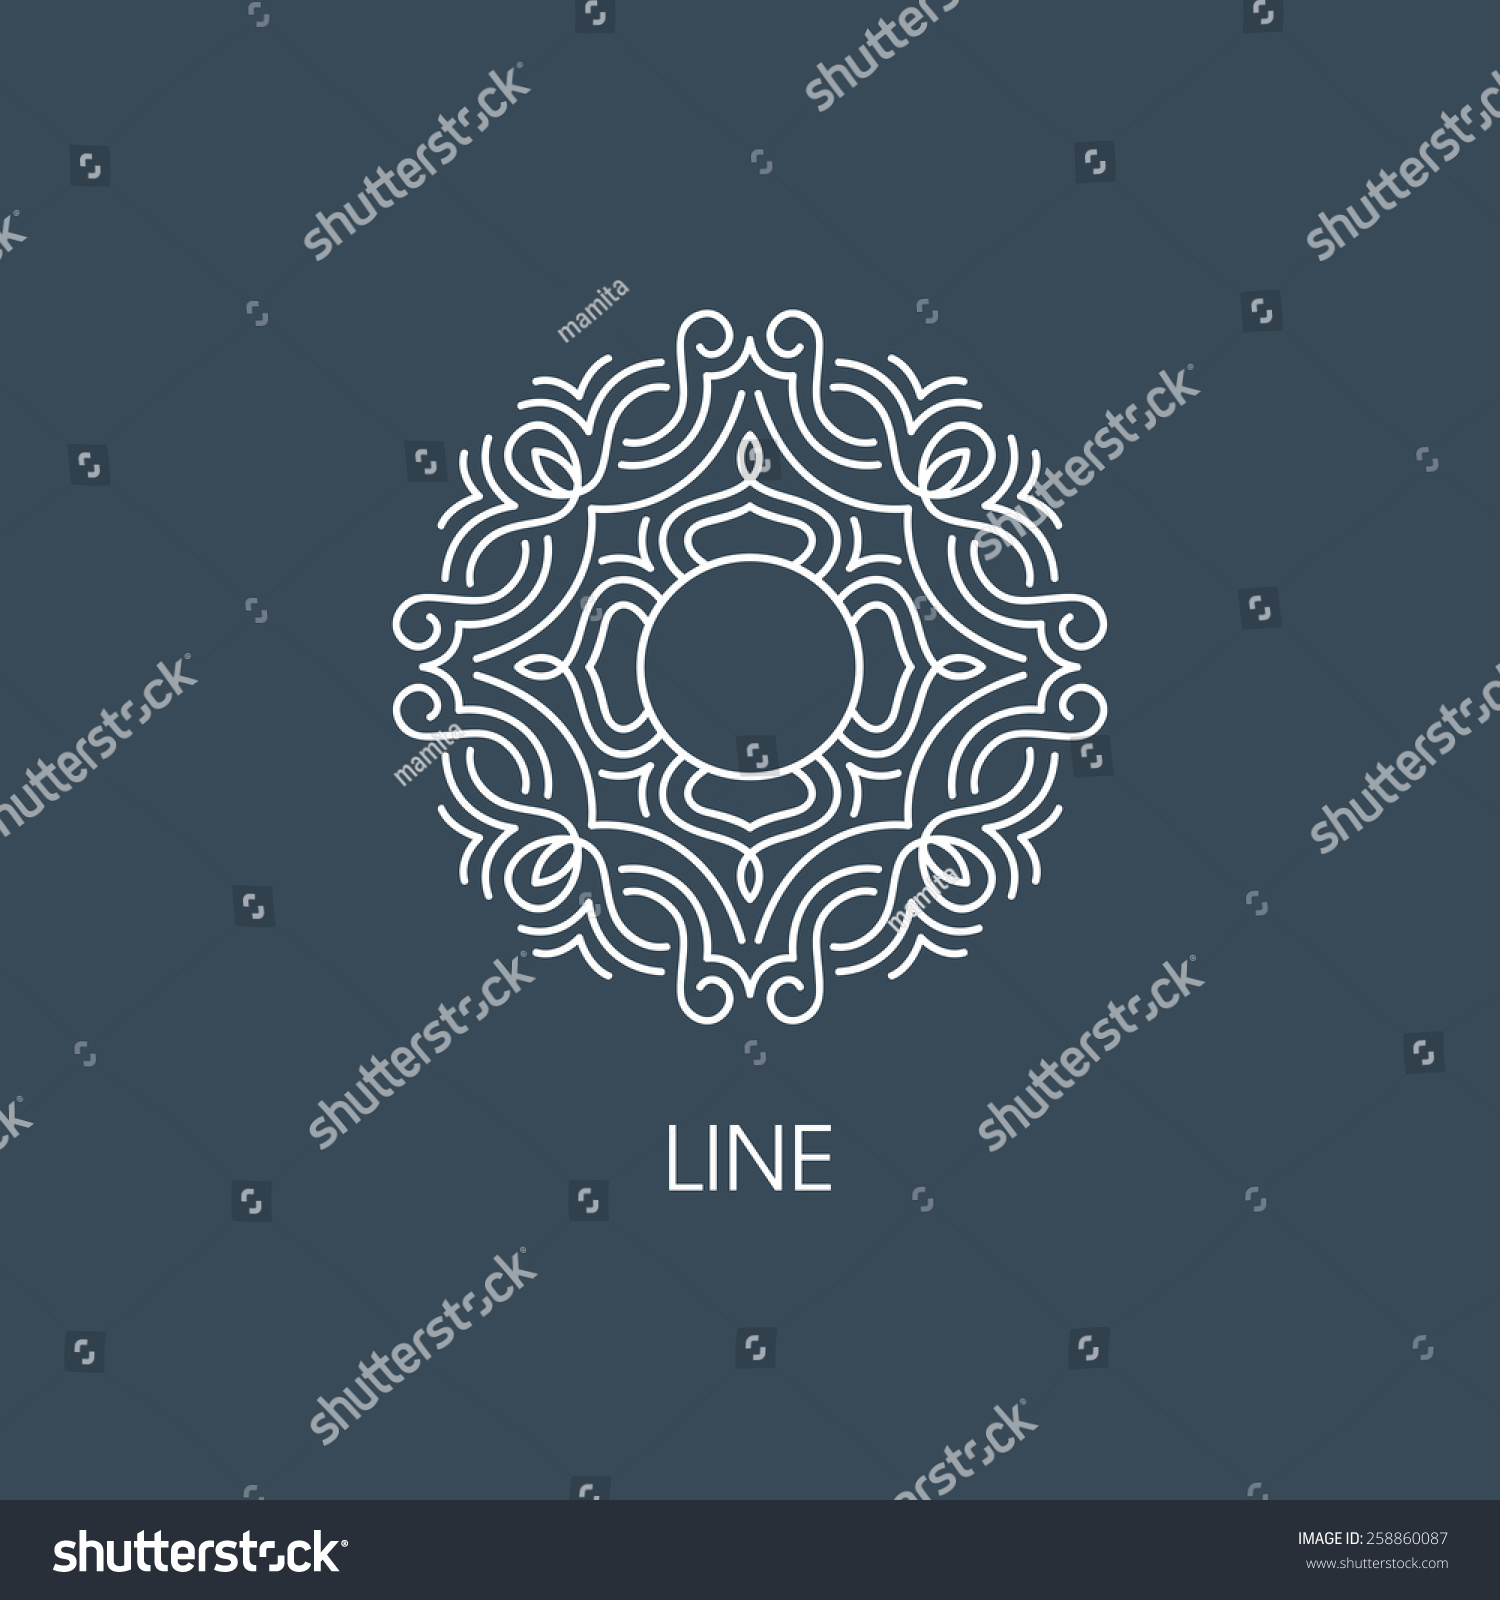 Geometric vector frame for text decoration illustration for A style text decoration